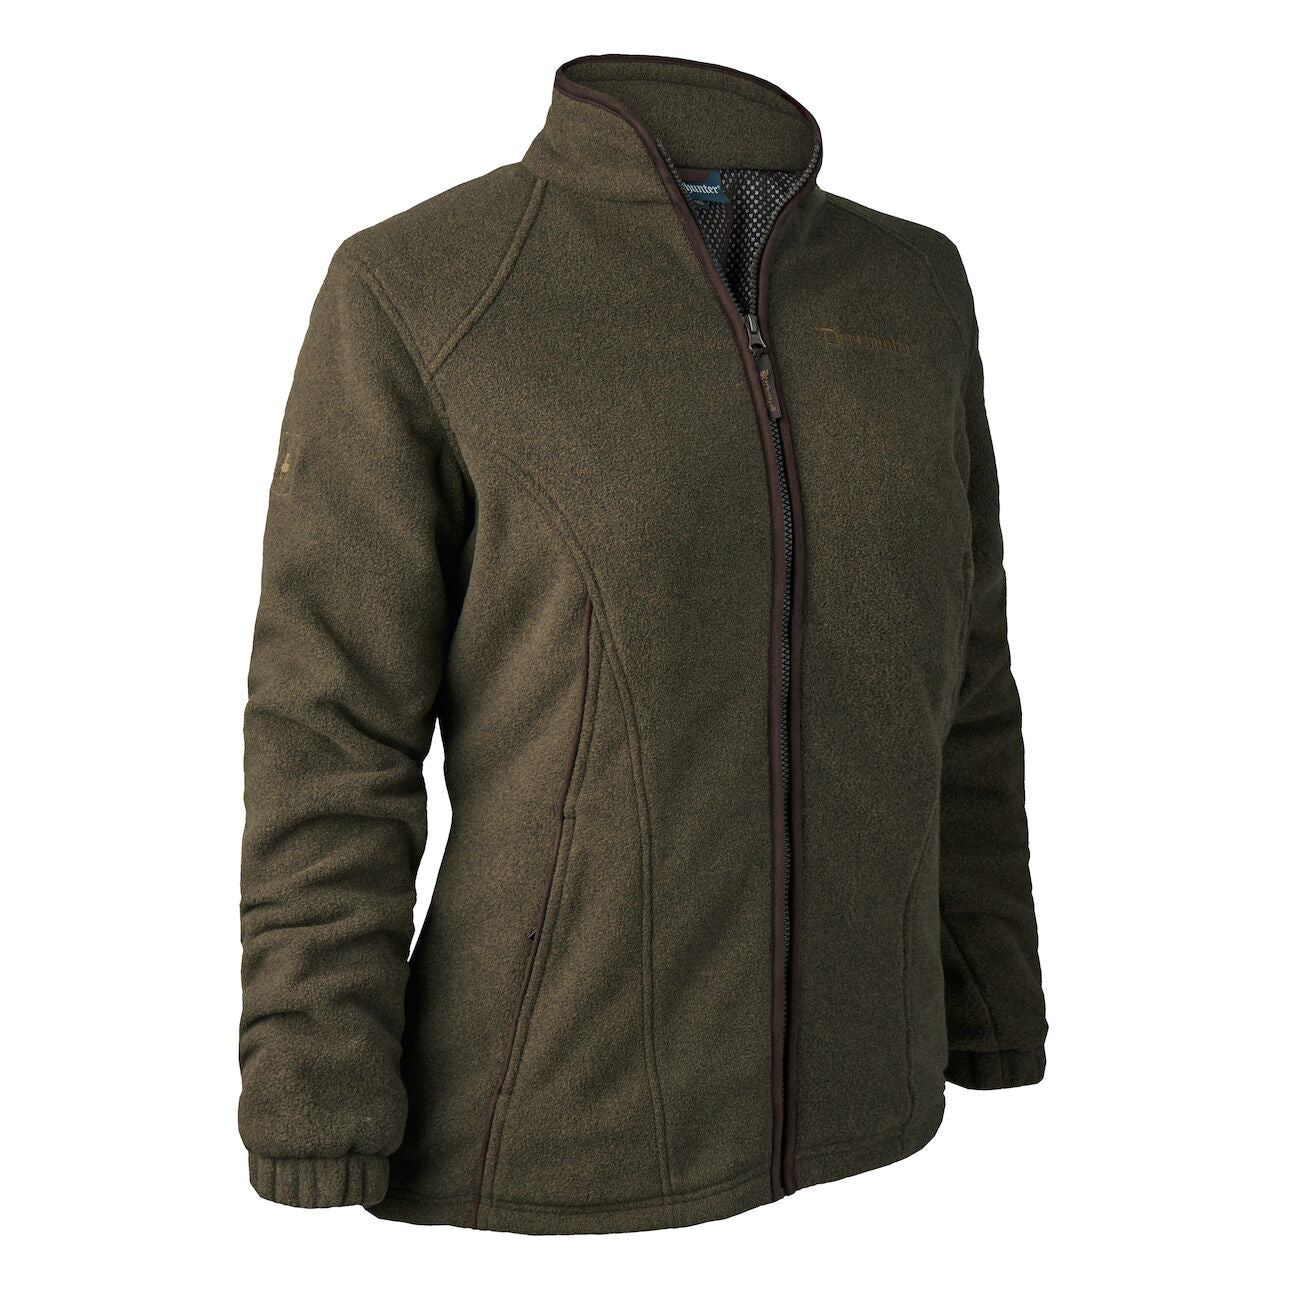 Deerhunter Lady Josephine Fleece Jacket ( with membrane) - Graphite Green